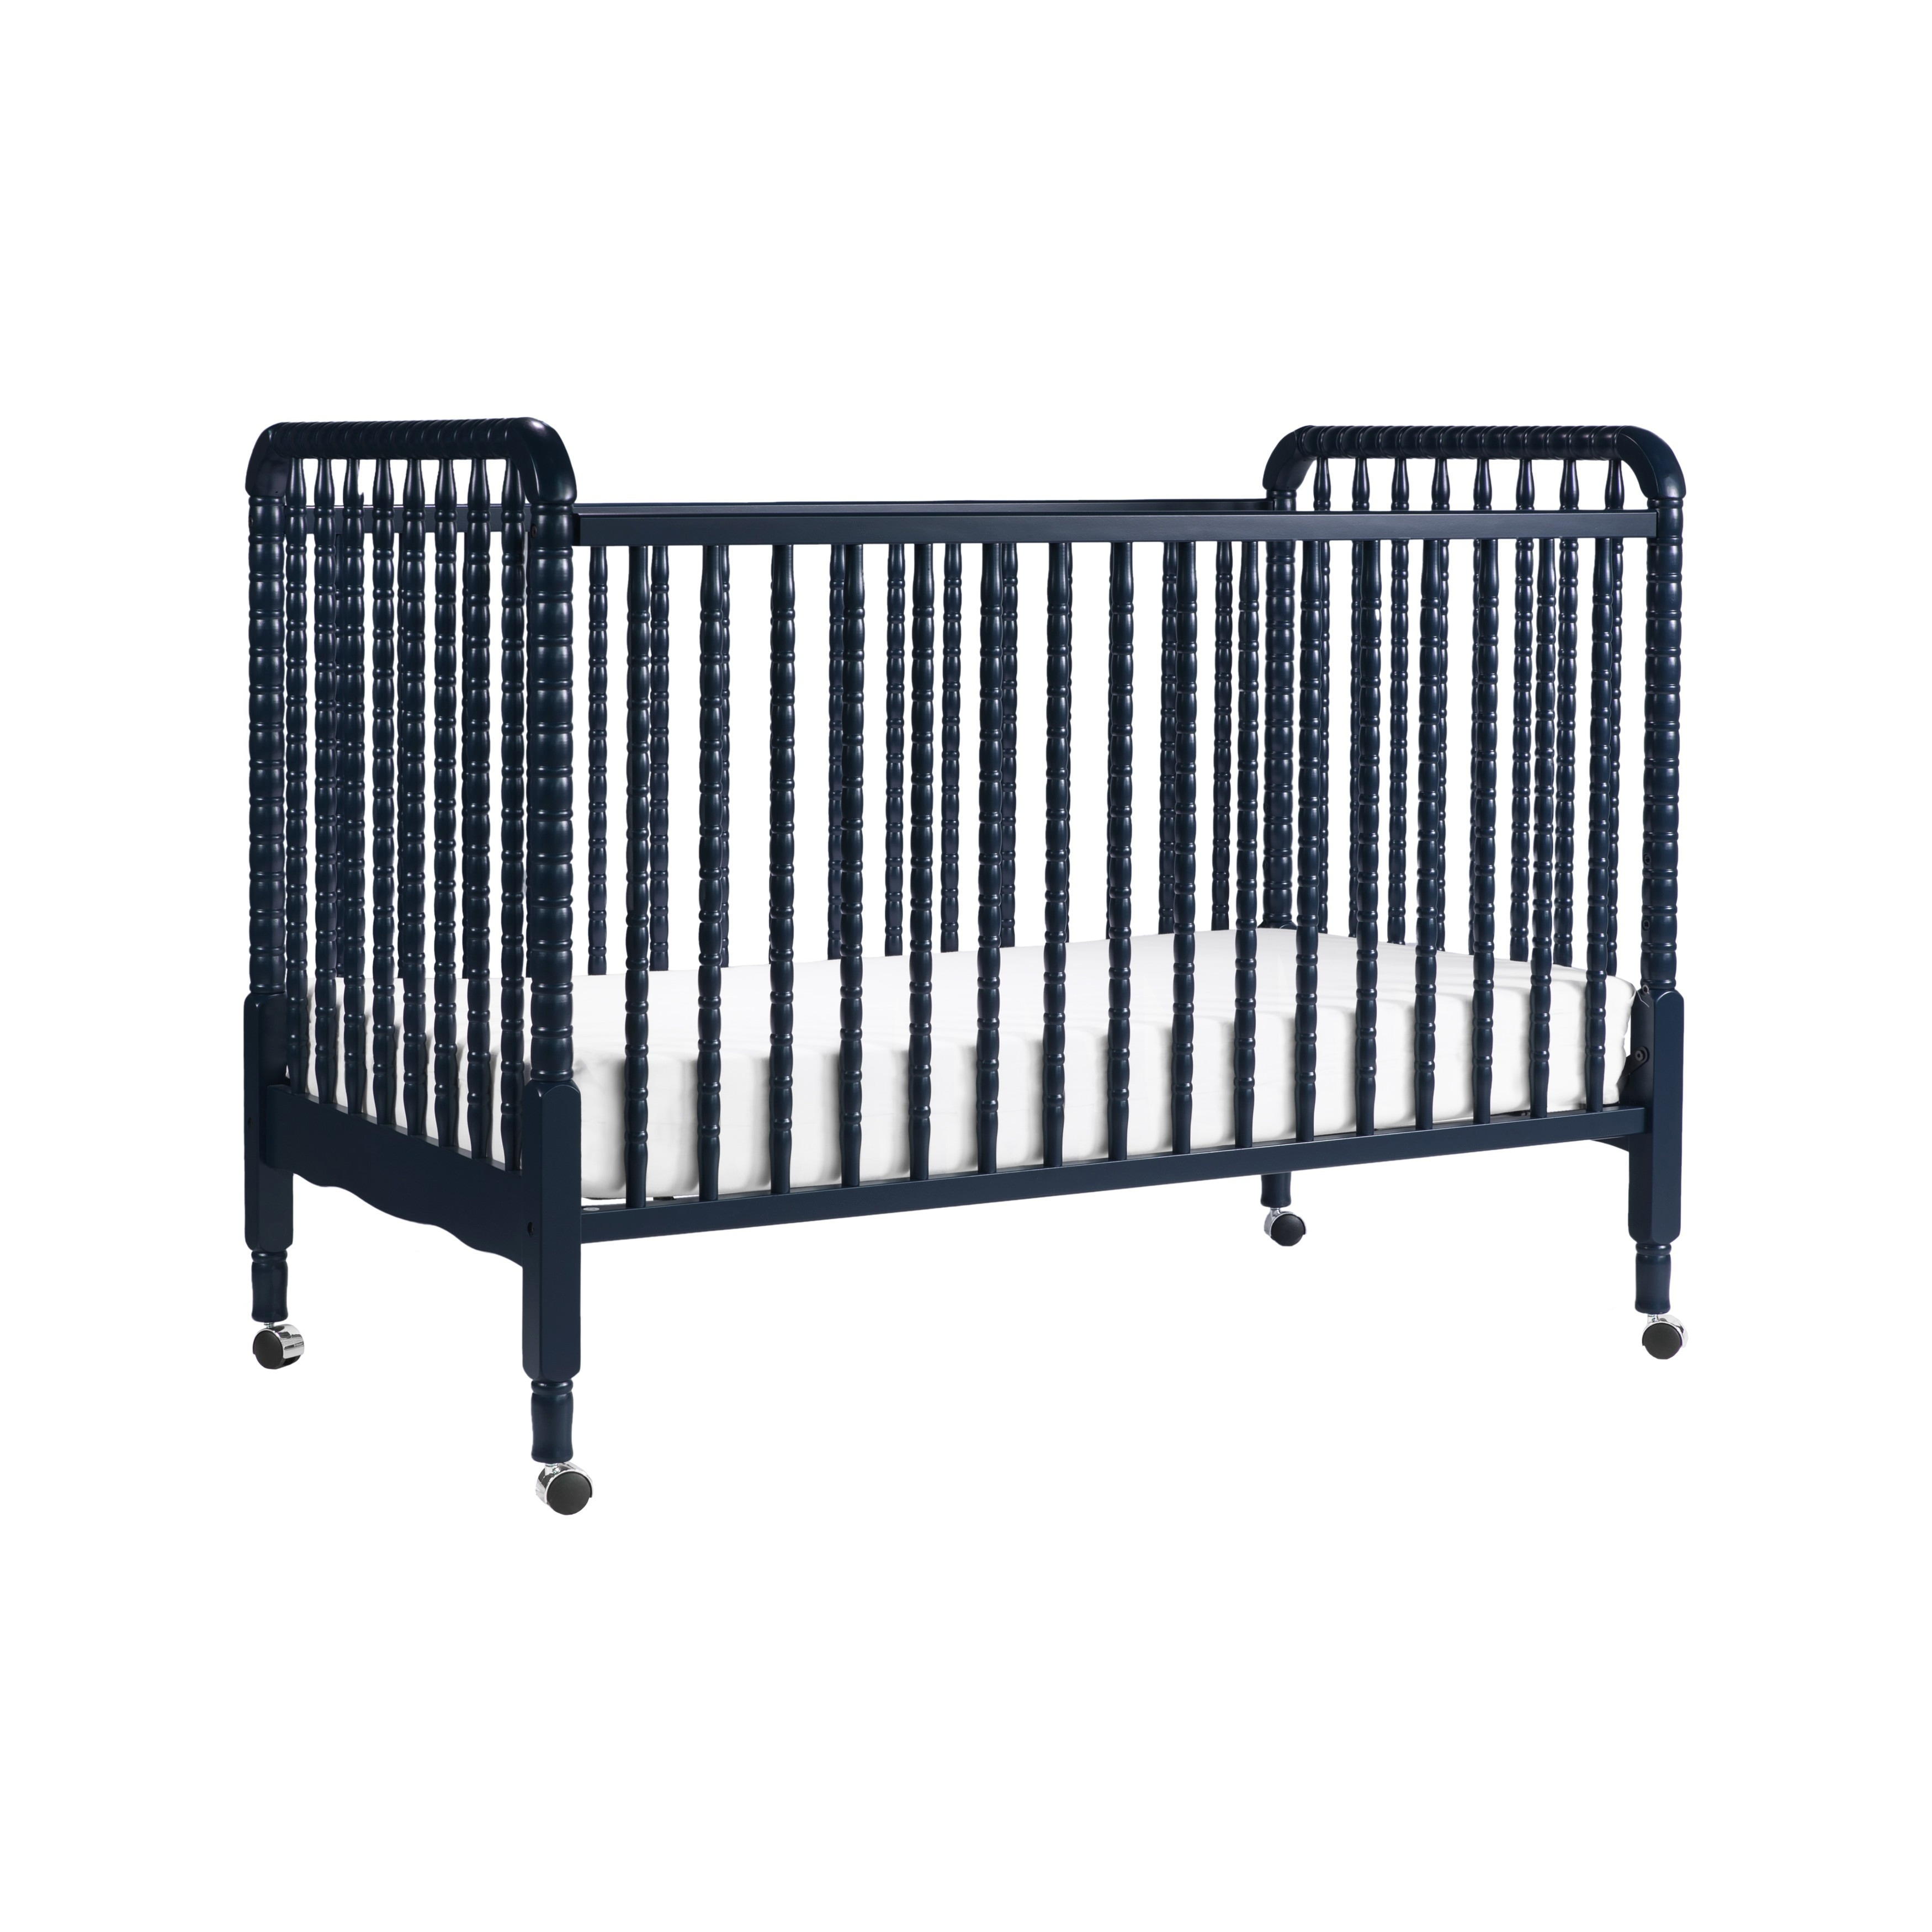 pretty amazon side drop in bedding of crib design skirt cri decor lynn lovely made for nursery ideas bedroom black recall jenny furniture with wood list white cribs lind davinci convertible bed